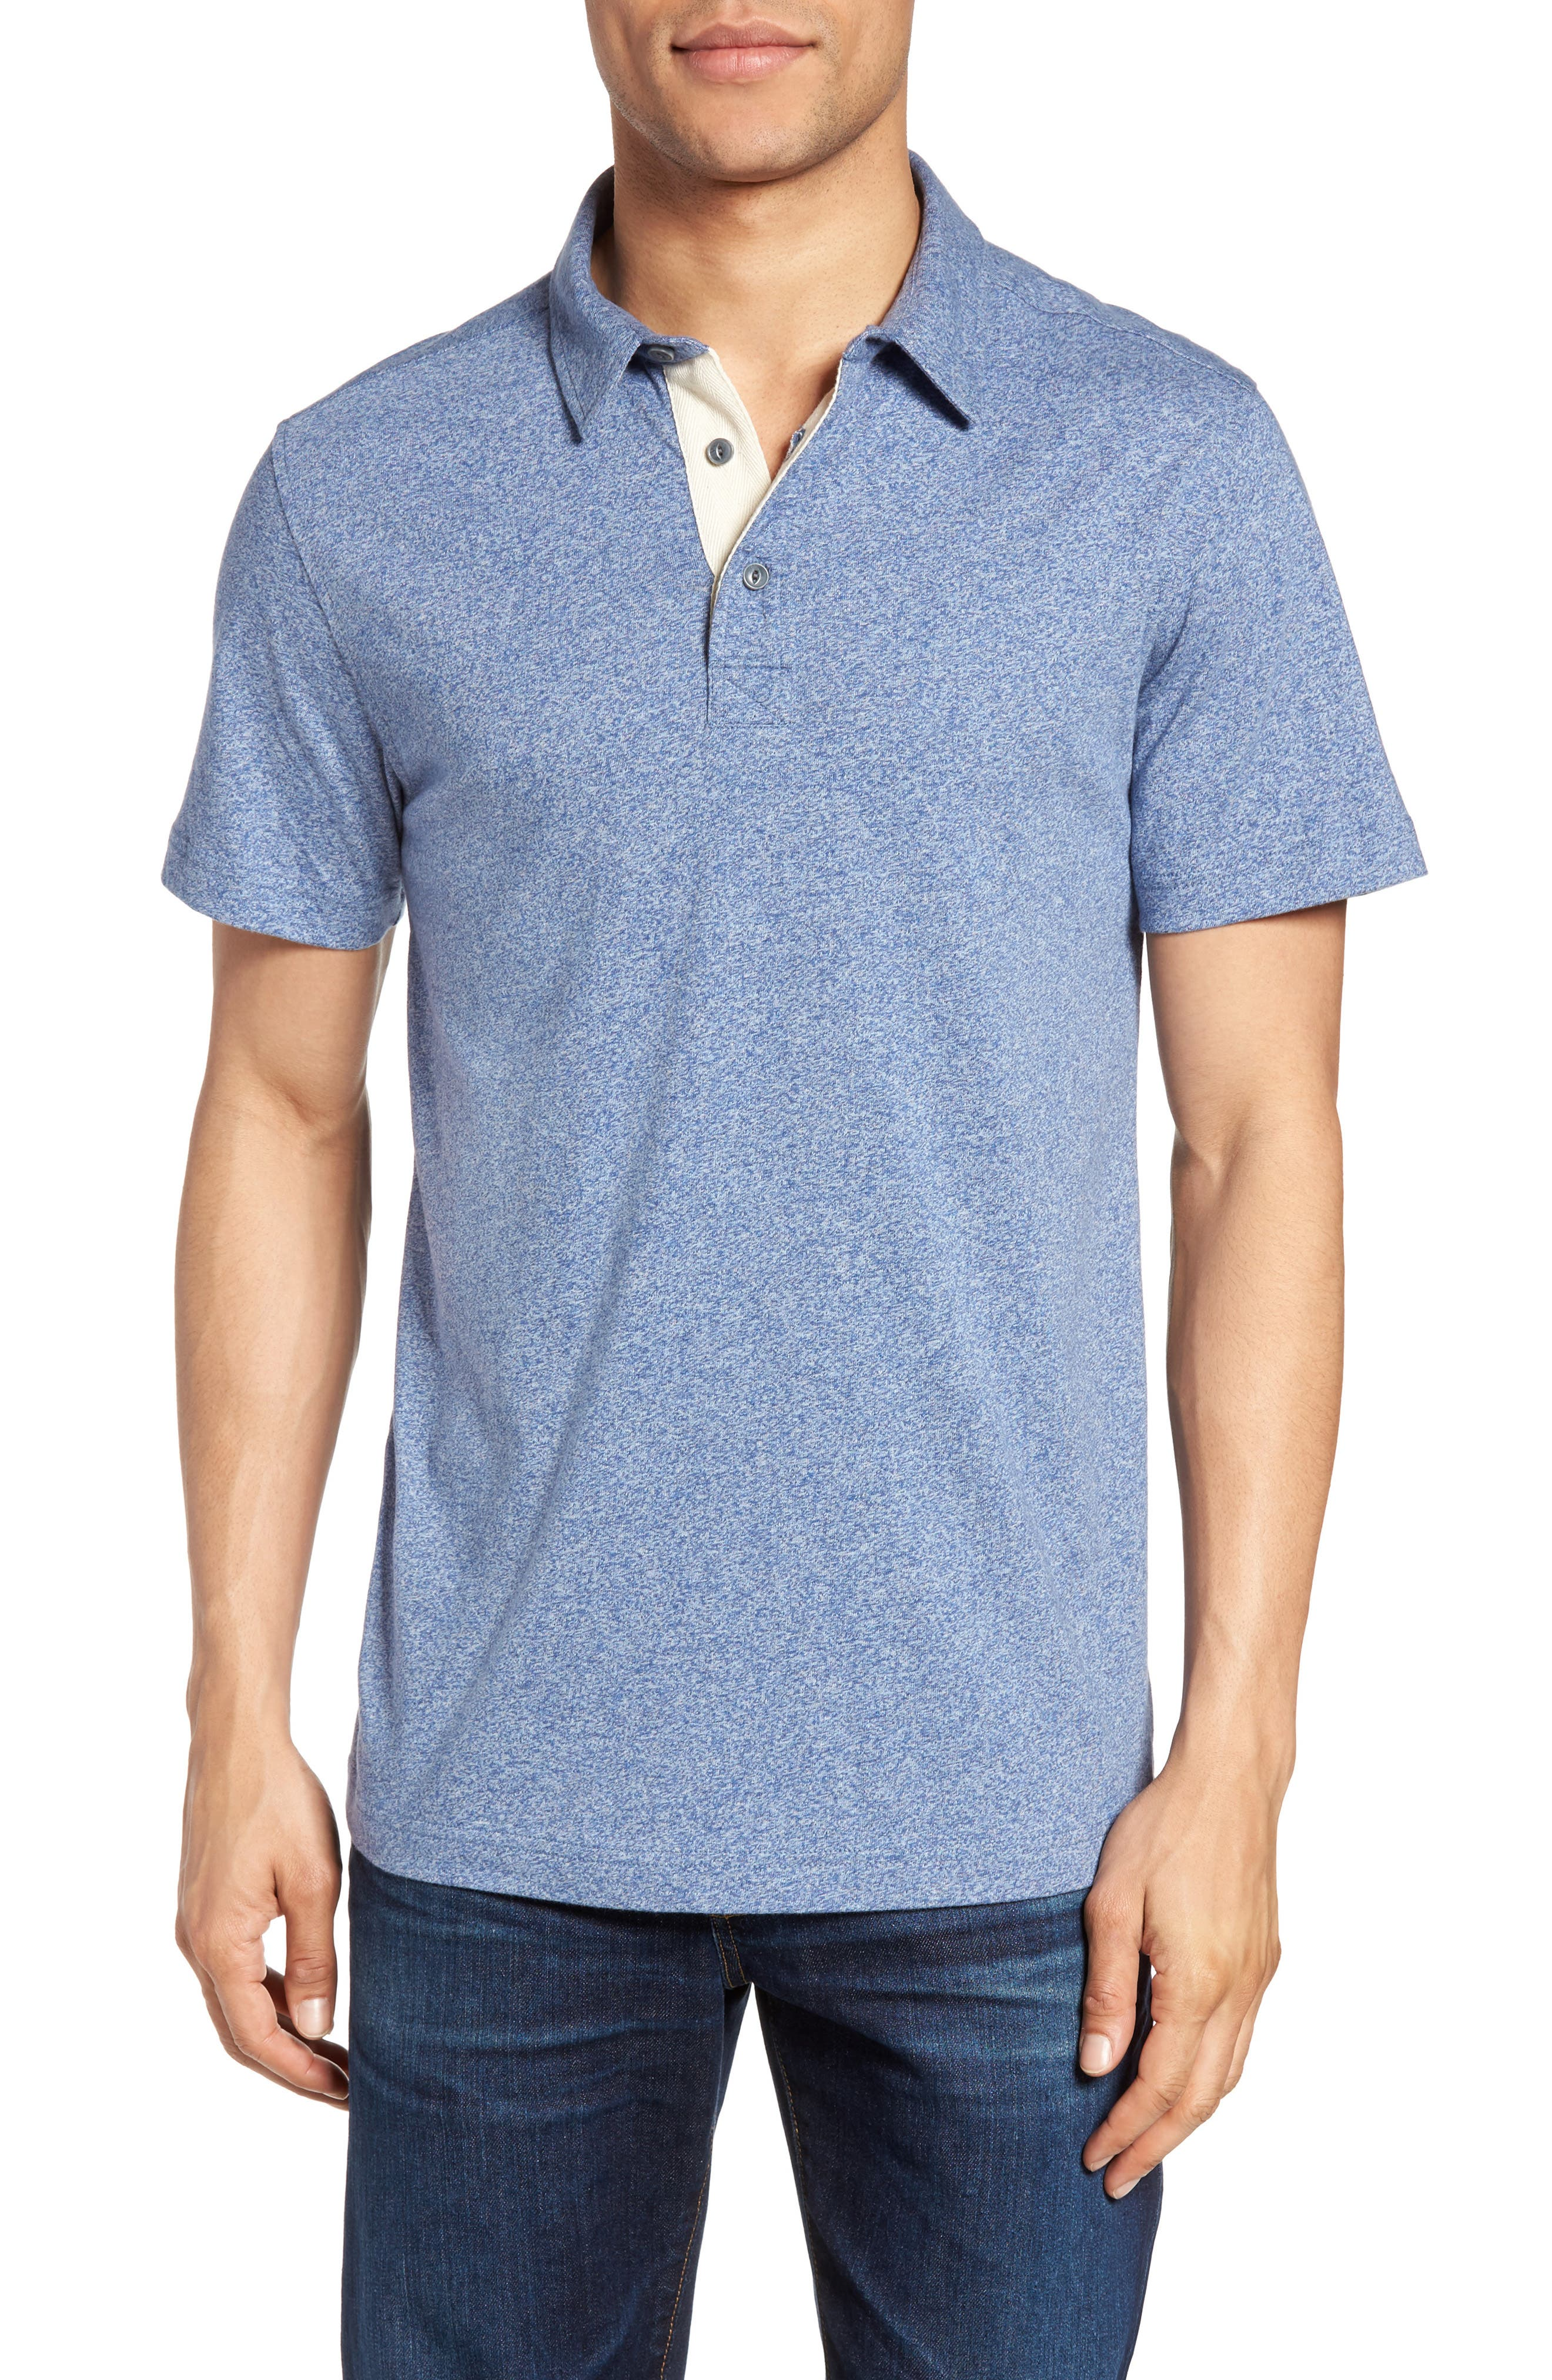 NORDSTROM MENS SHOP Trim Fit Jaspé Polo